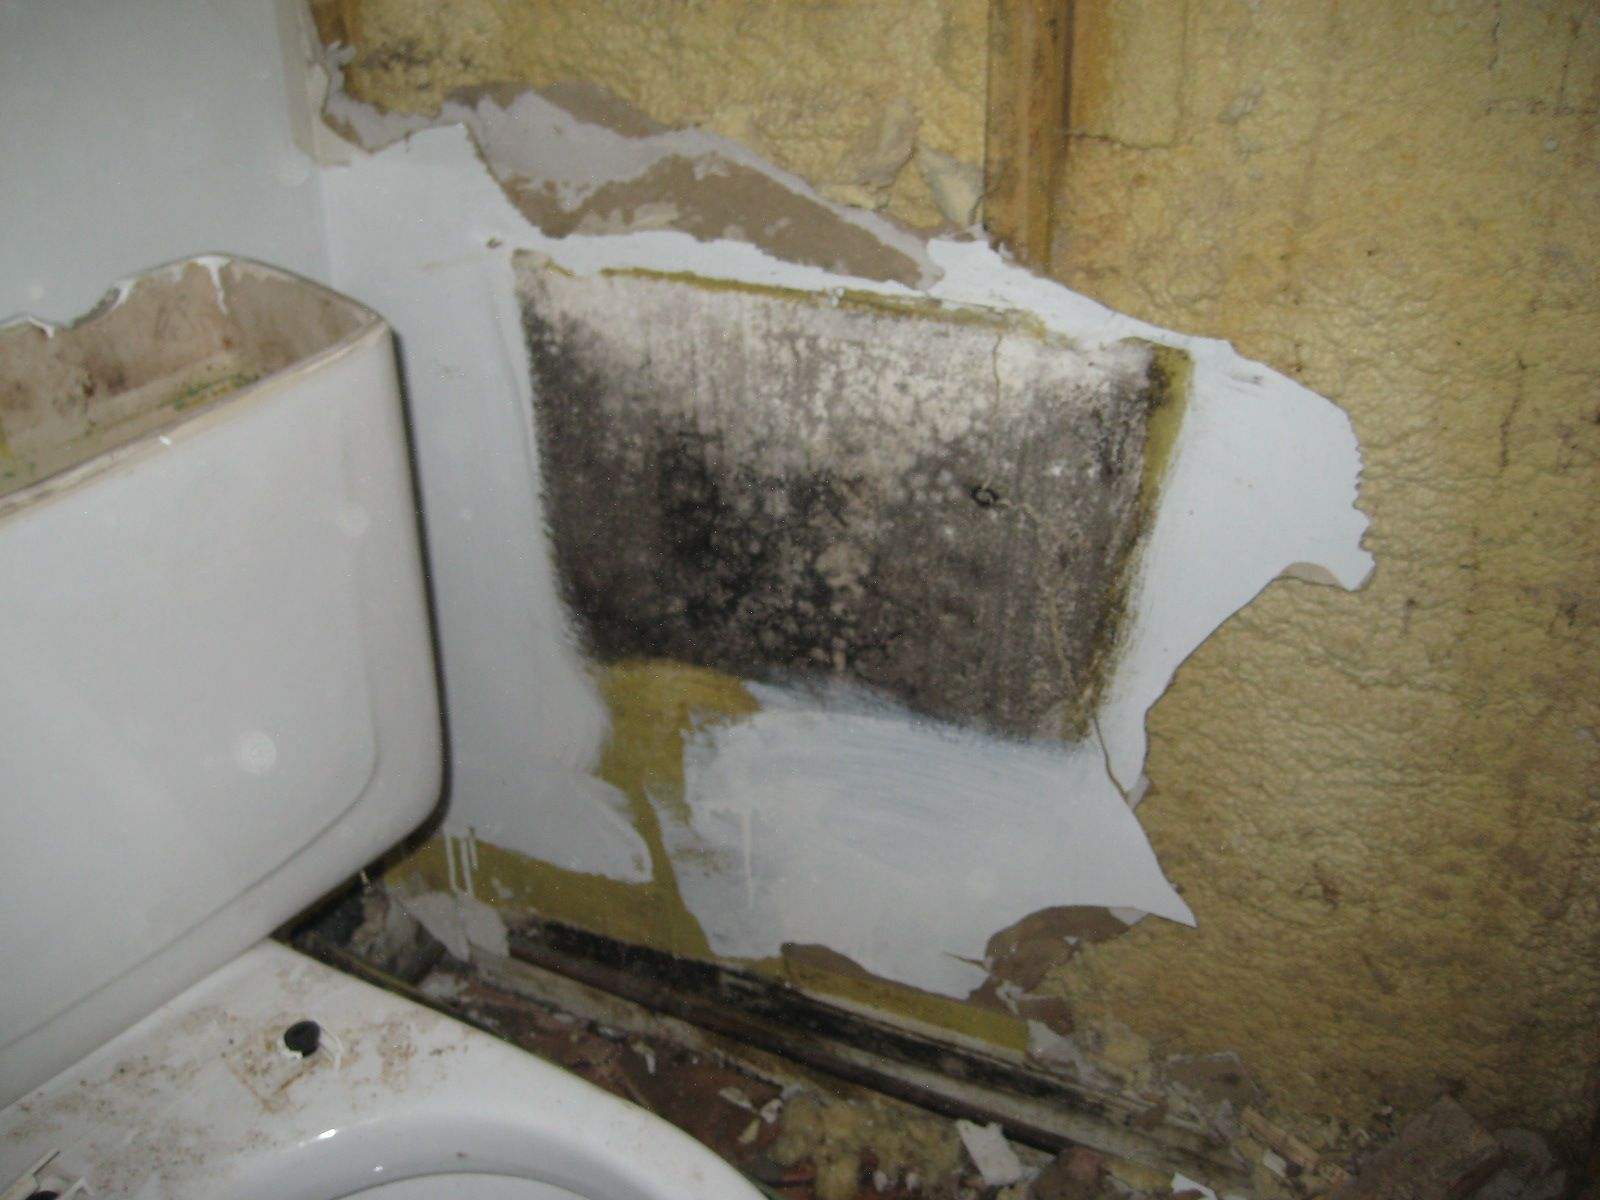 Black Mold Behind The Bathroom Wall Just Because You Dont See Mold - Black mold in bathroom wall